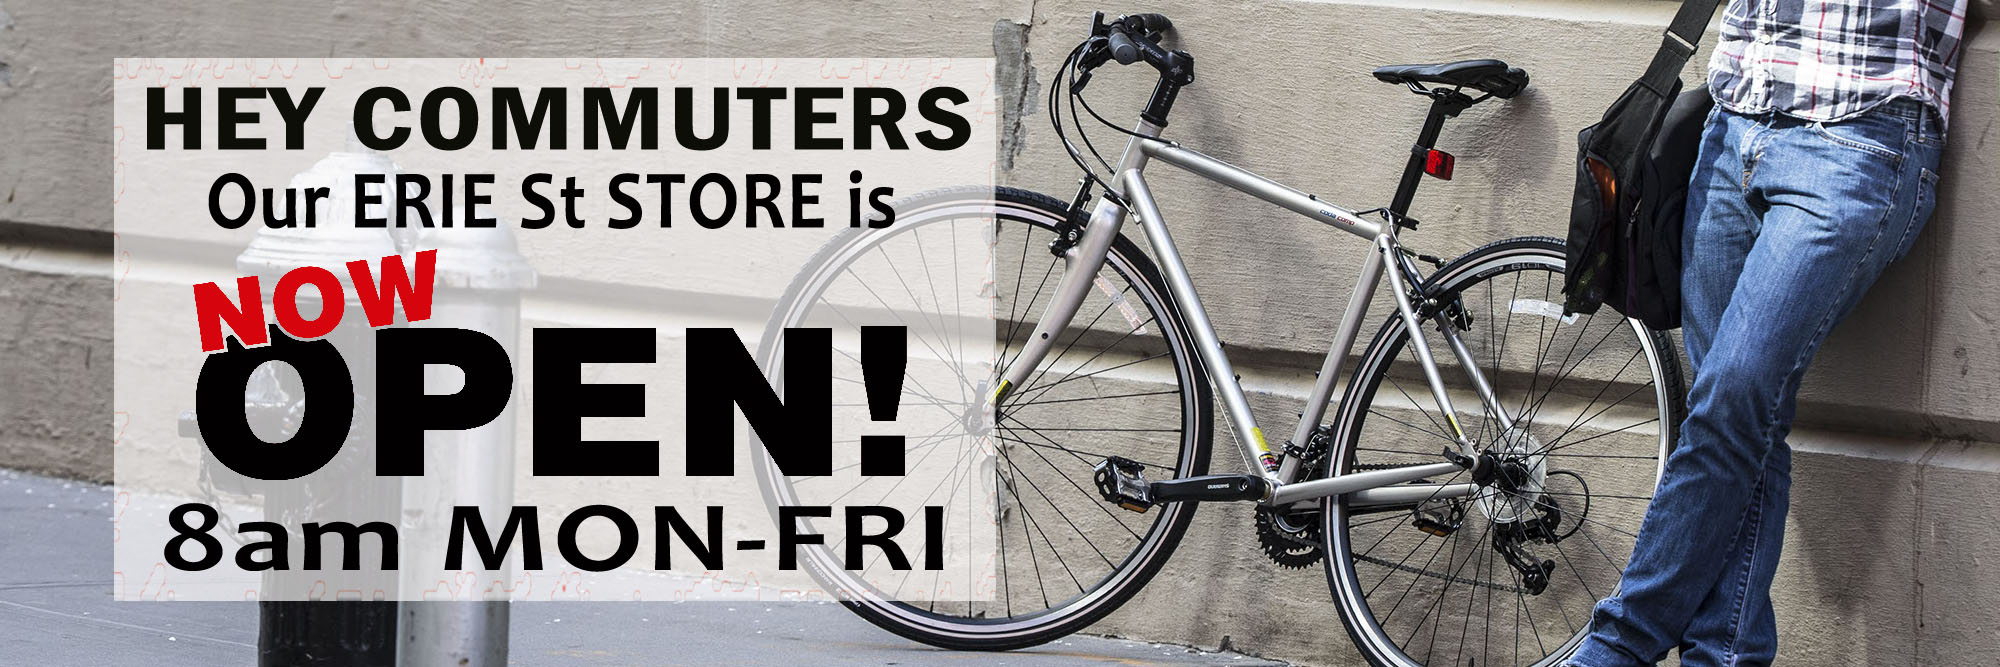 Our Erie St Store Opens at 8am Monday-Friday